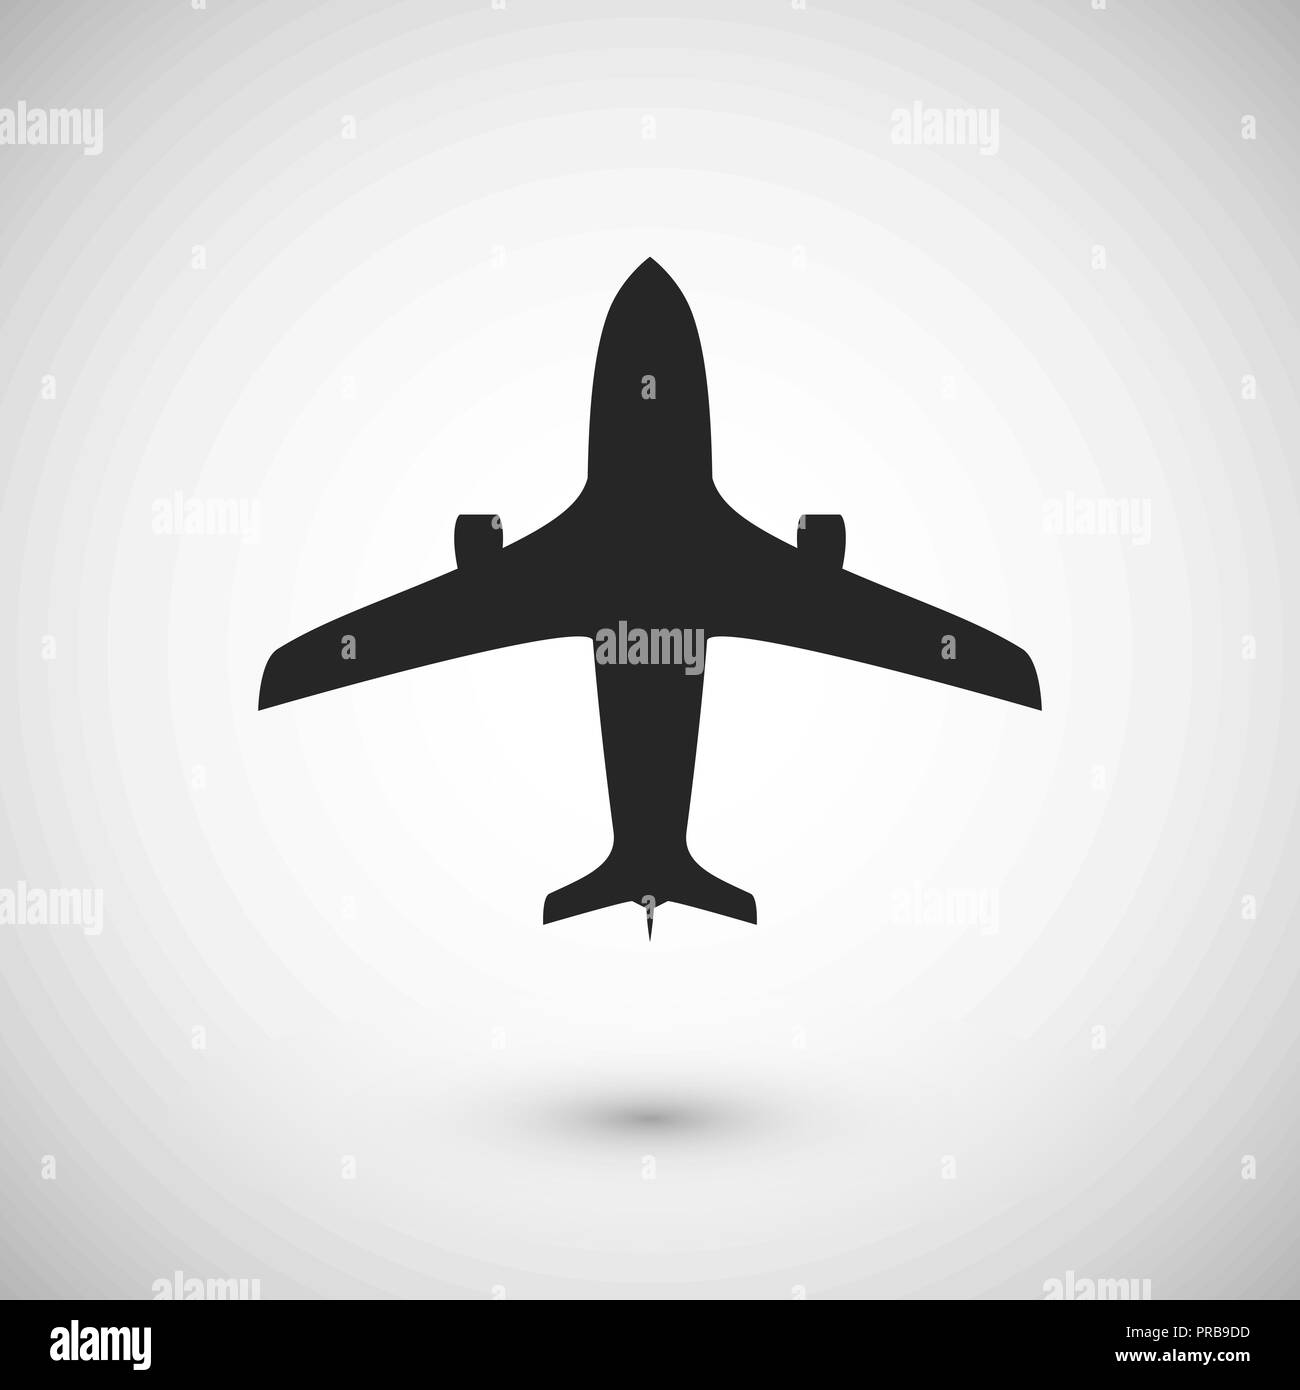 Plane icon. Jet silhouette template. Isolated vector illustration - Stock Vector